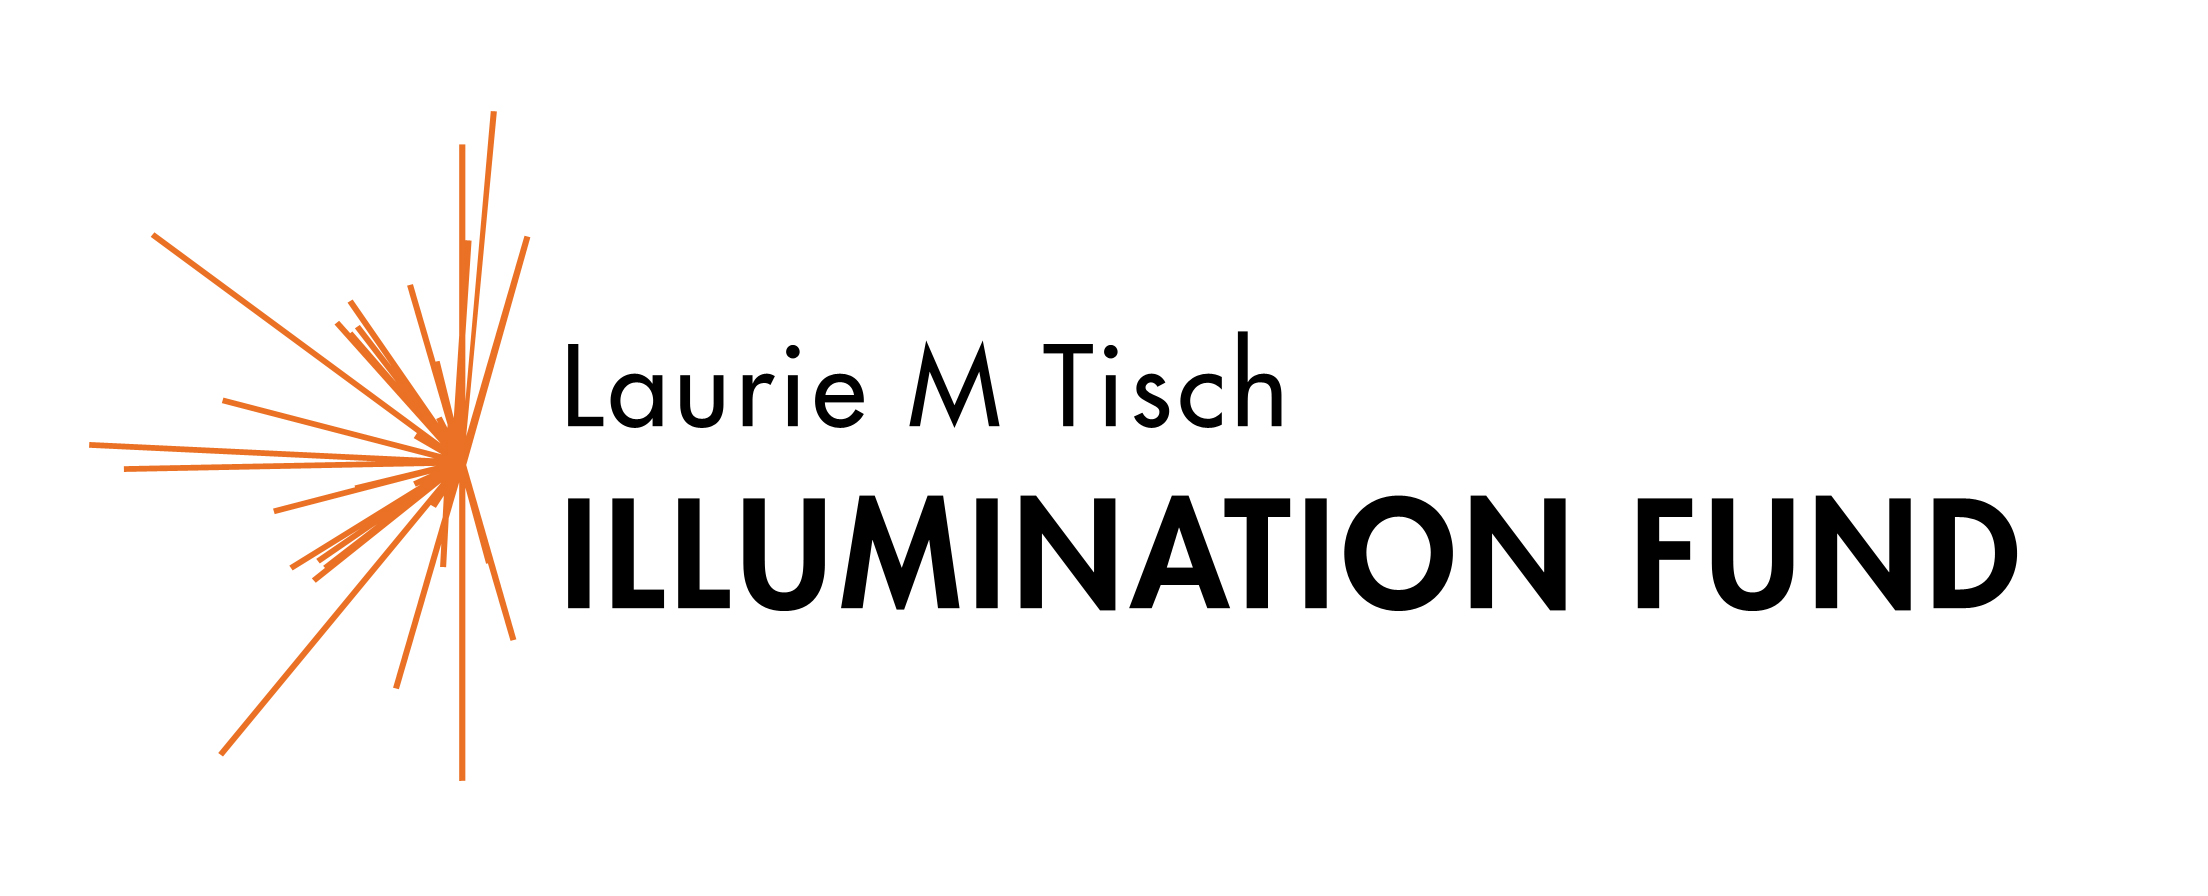 Laurie M Tisch Illumination Fund